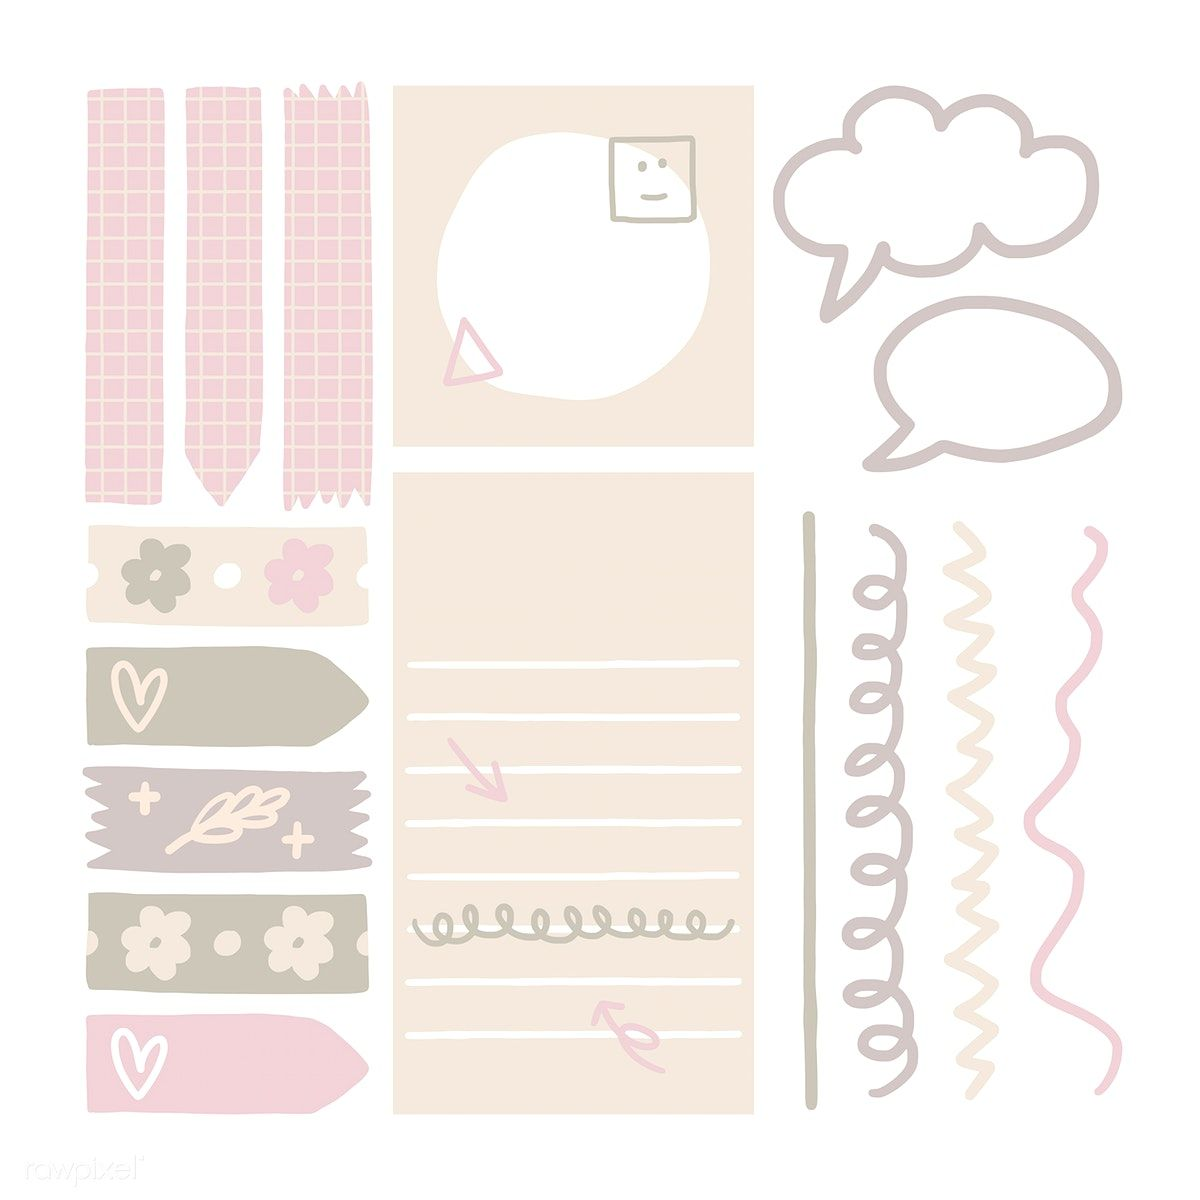 Sticky note doodle collection vectors free image by